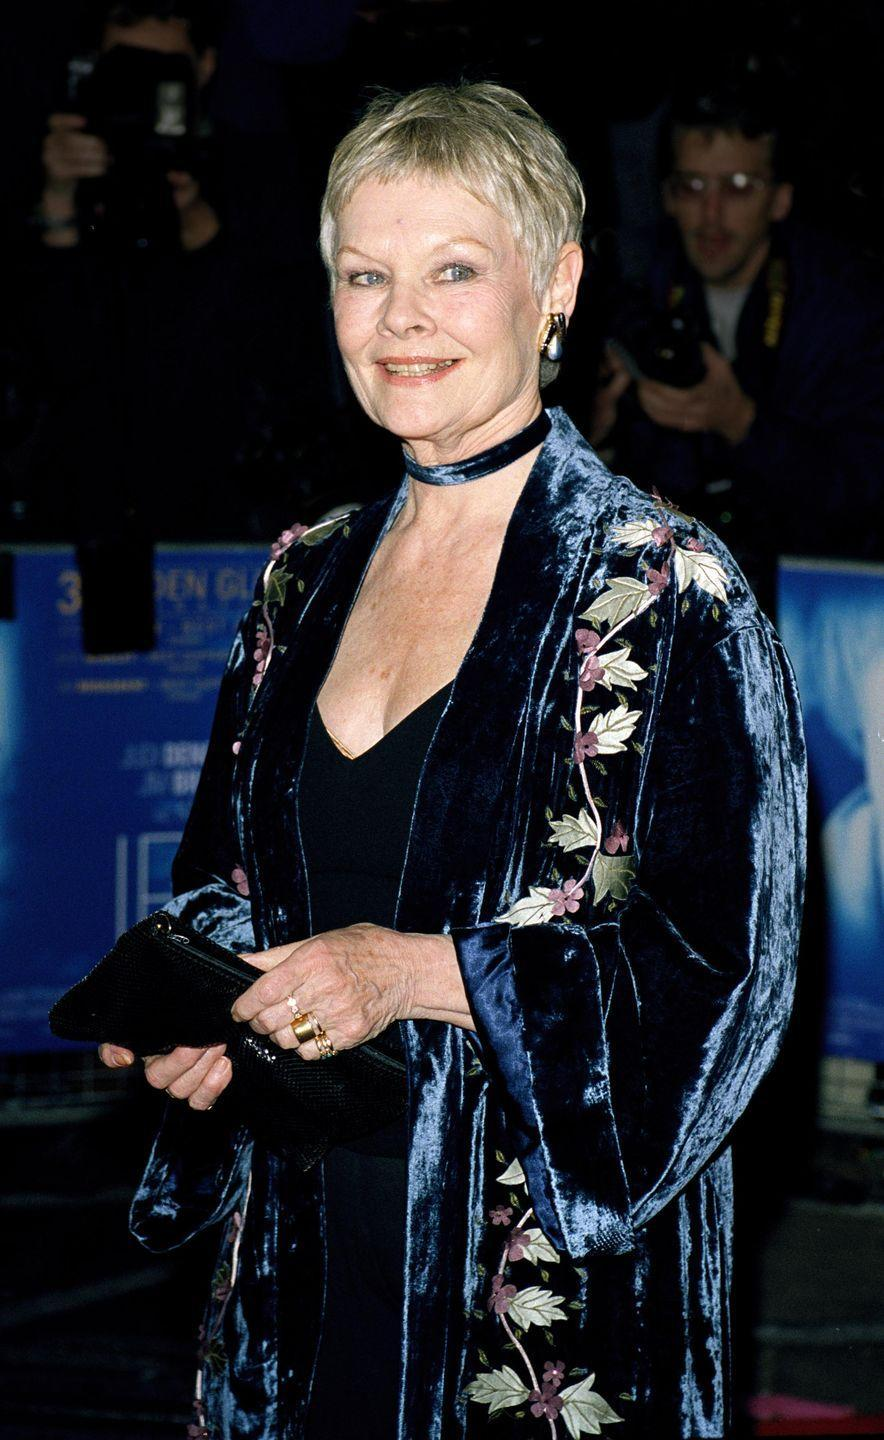 <p>The 2001 drama <em>Iris</em> told the story of novelist Iris Murdoch. Dench played the title role, which won her a BAFTA Award.<br></p>